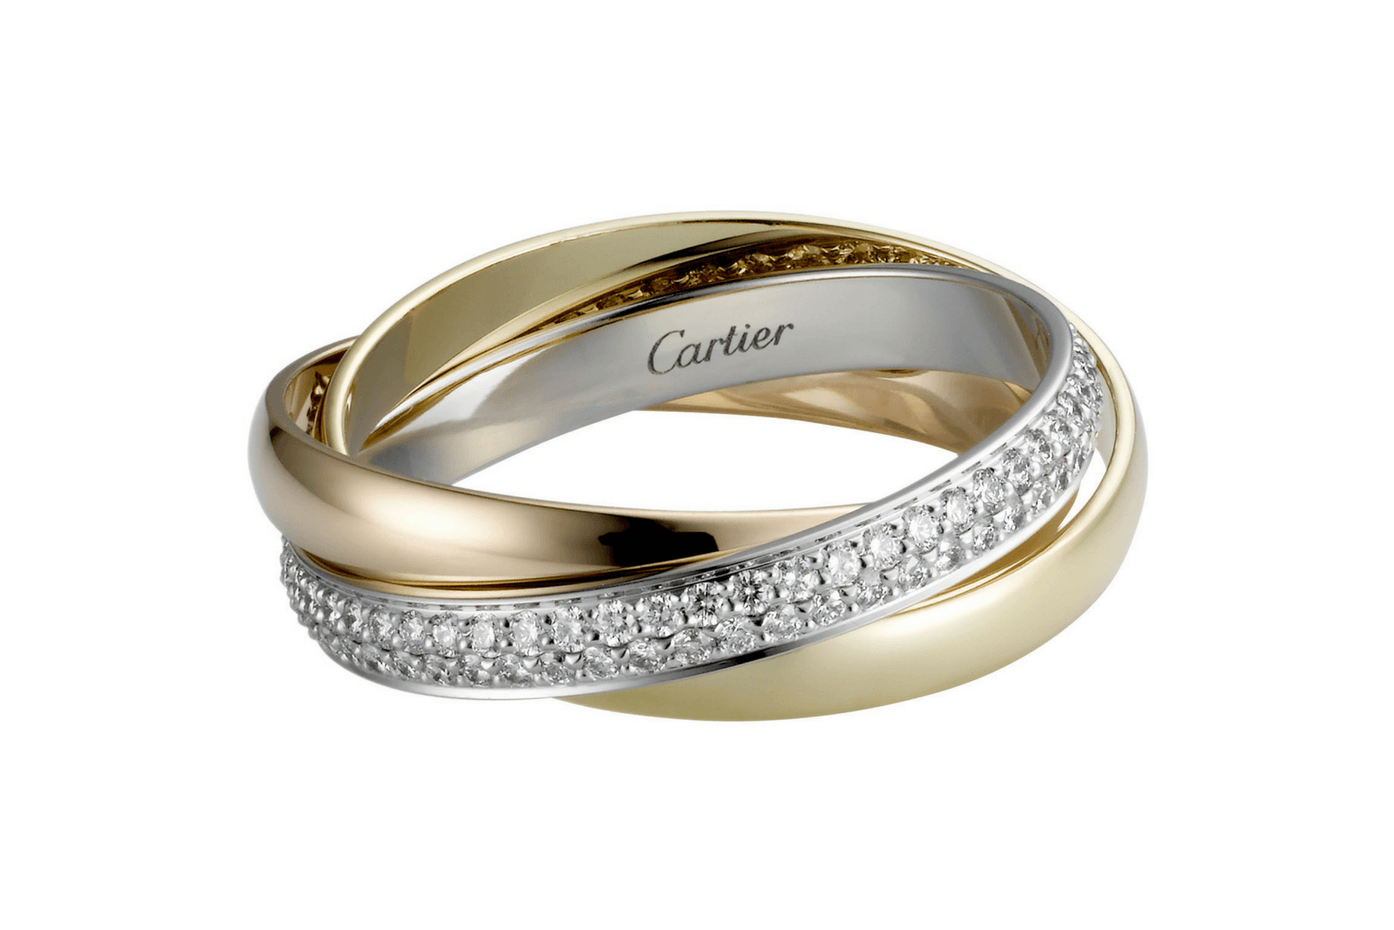 Trinity de Cartier ring, white gold, pink gold, yellow gold, set with 102 brilliant-cut diamonds.